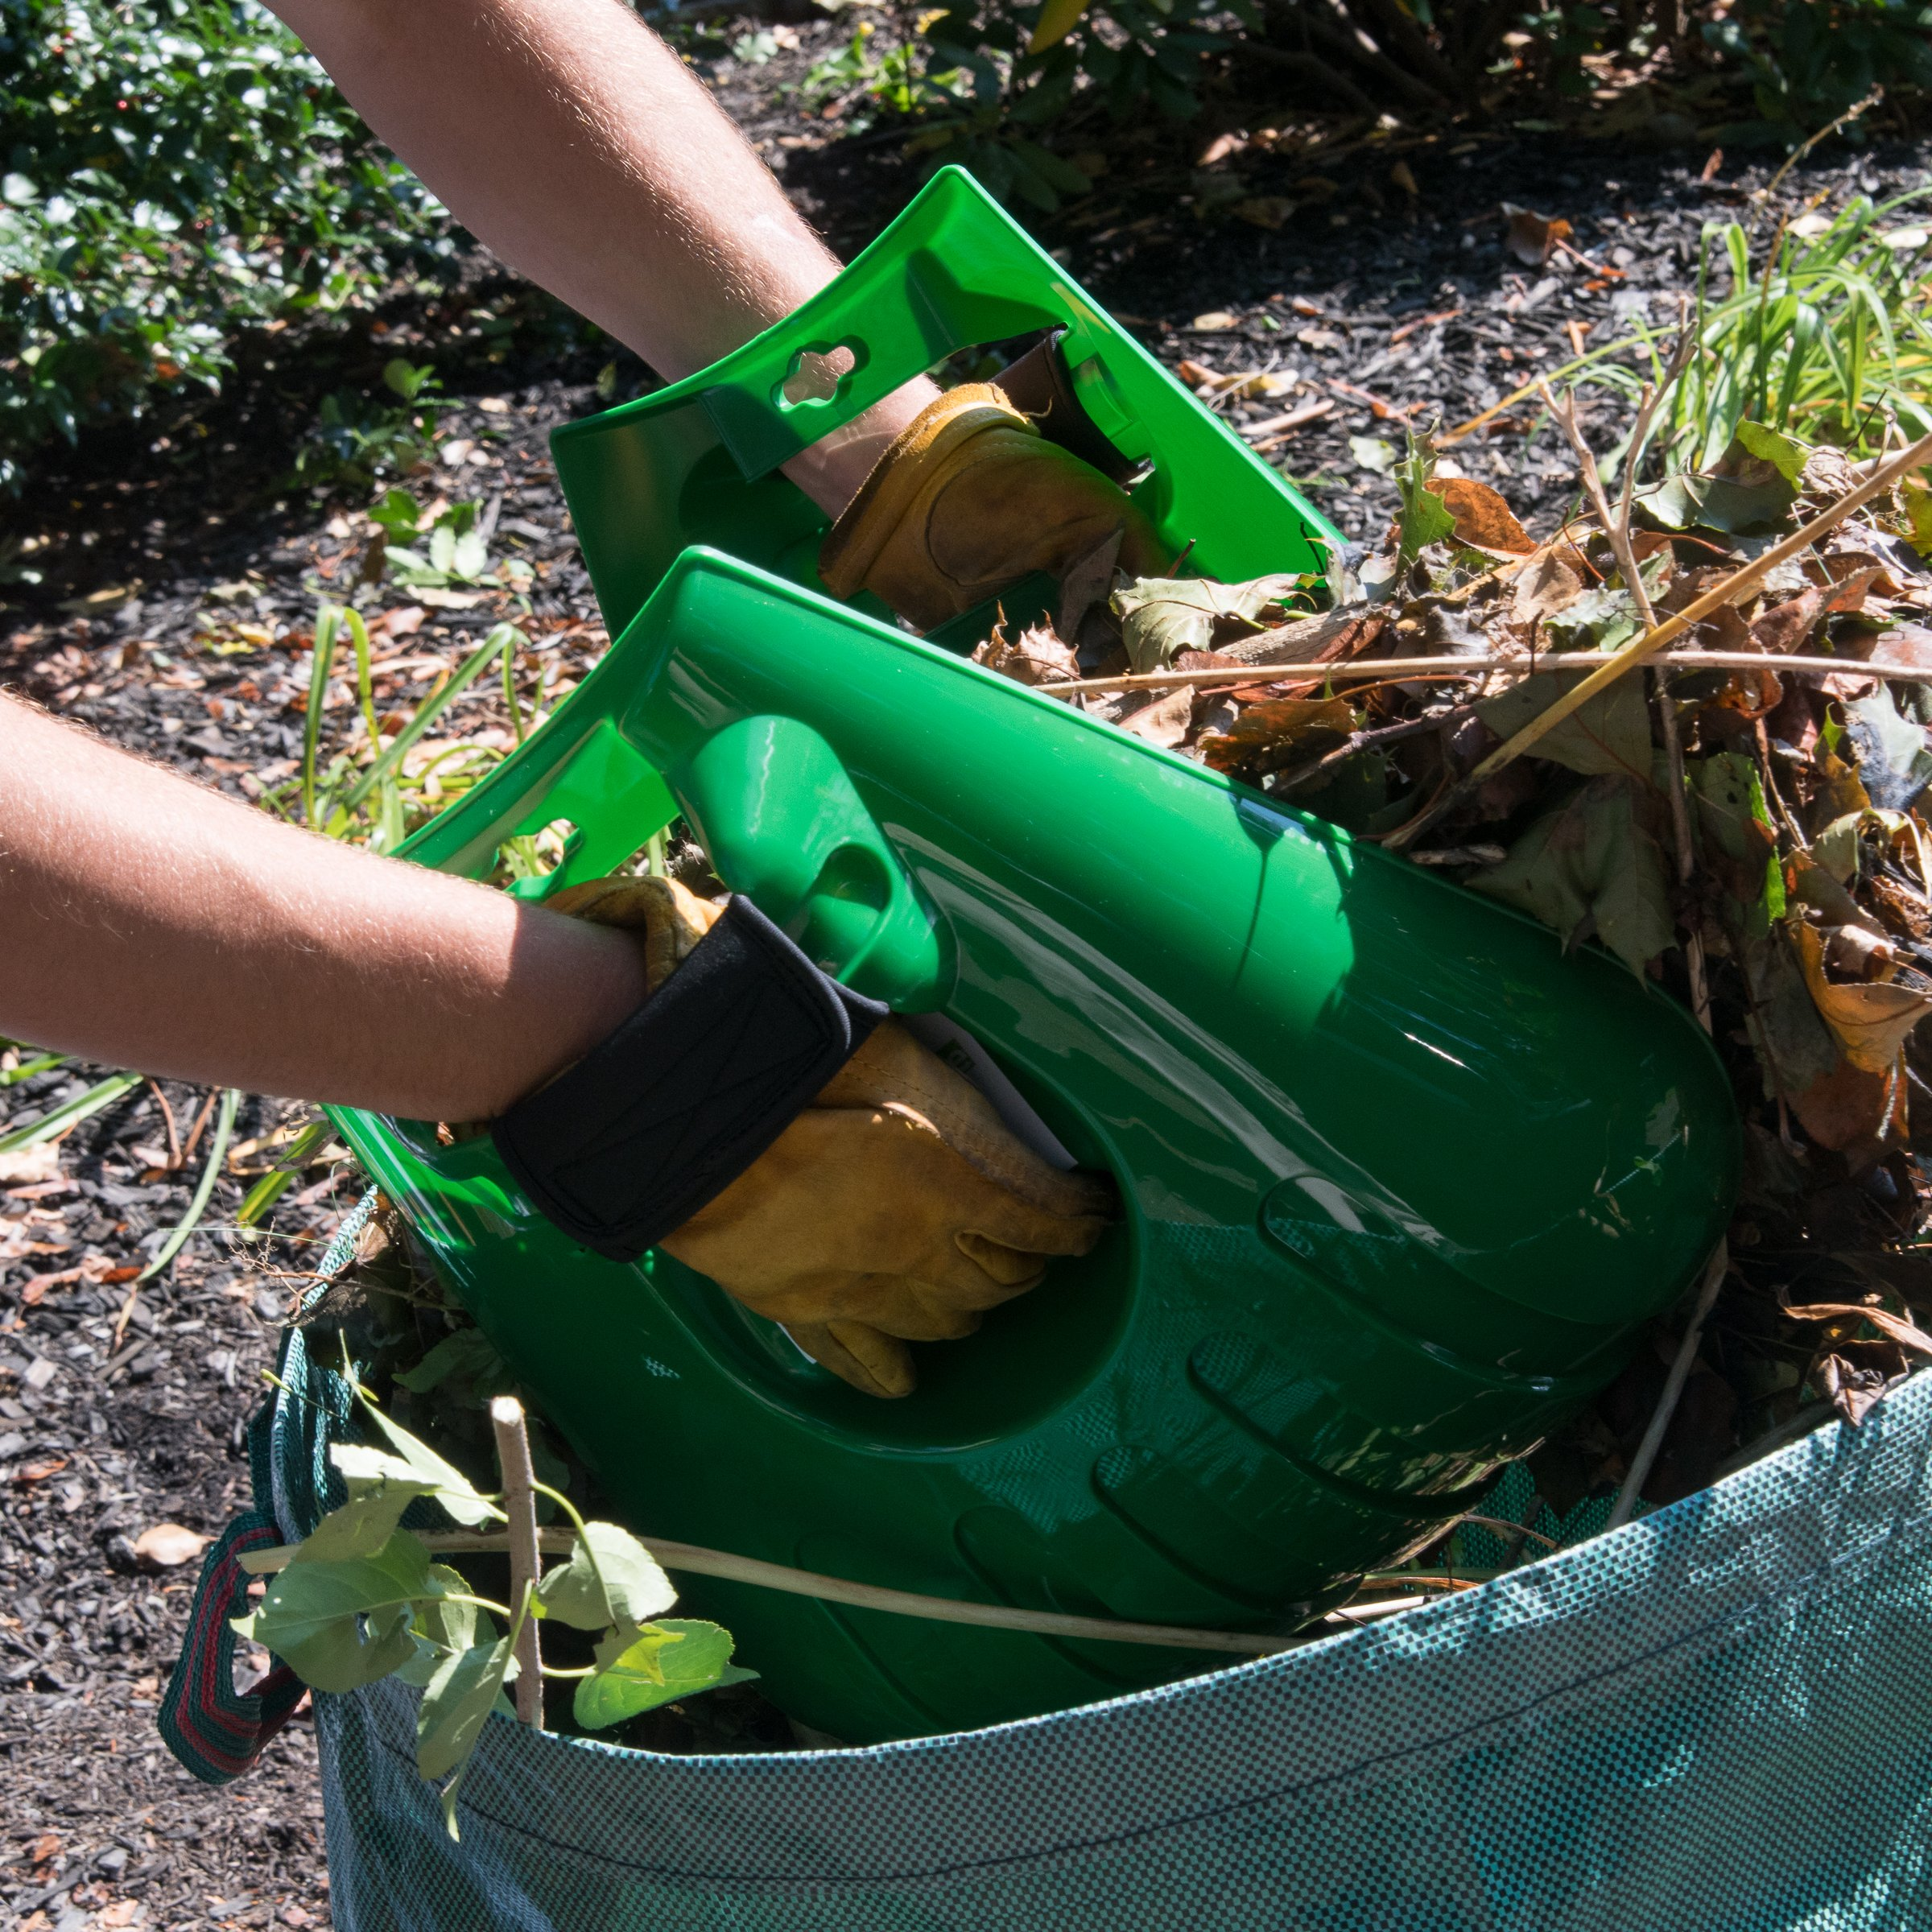 Mixitude Garden Hand Leaf Claw Scoops complete with Protective Wrist Pad and 72 Gallon Leaf Waste Bag by Mixtitude (Image #7)